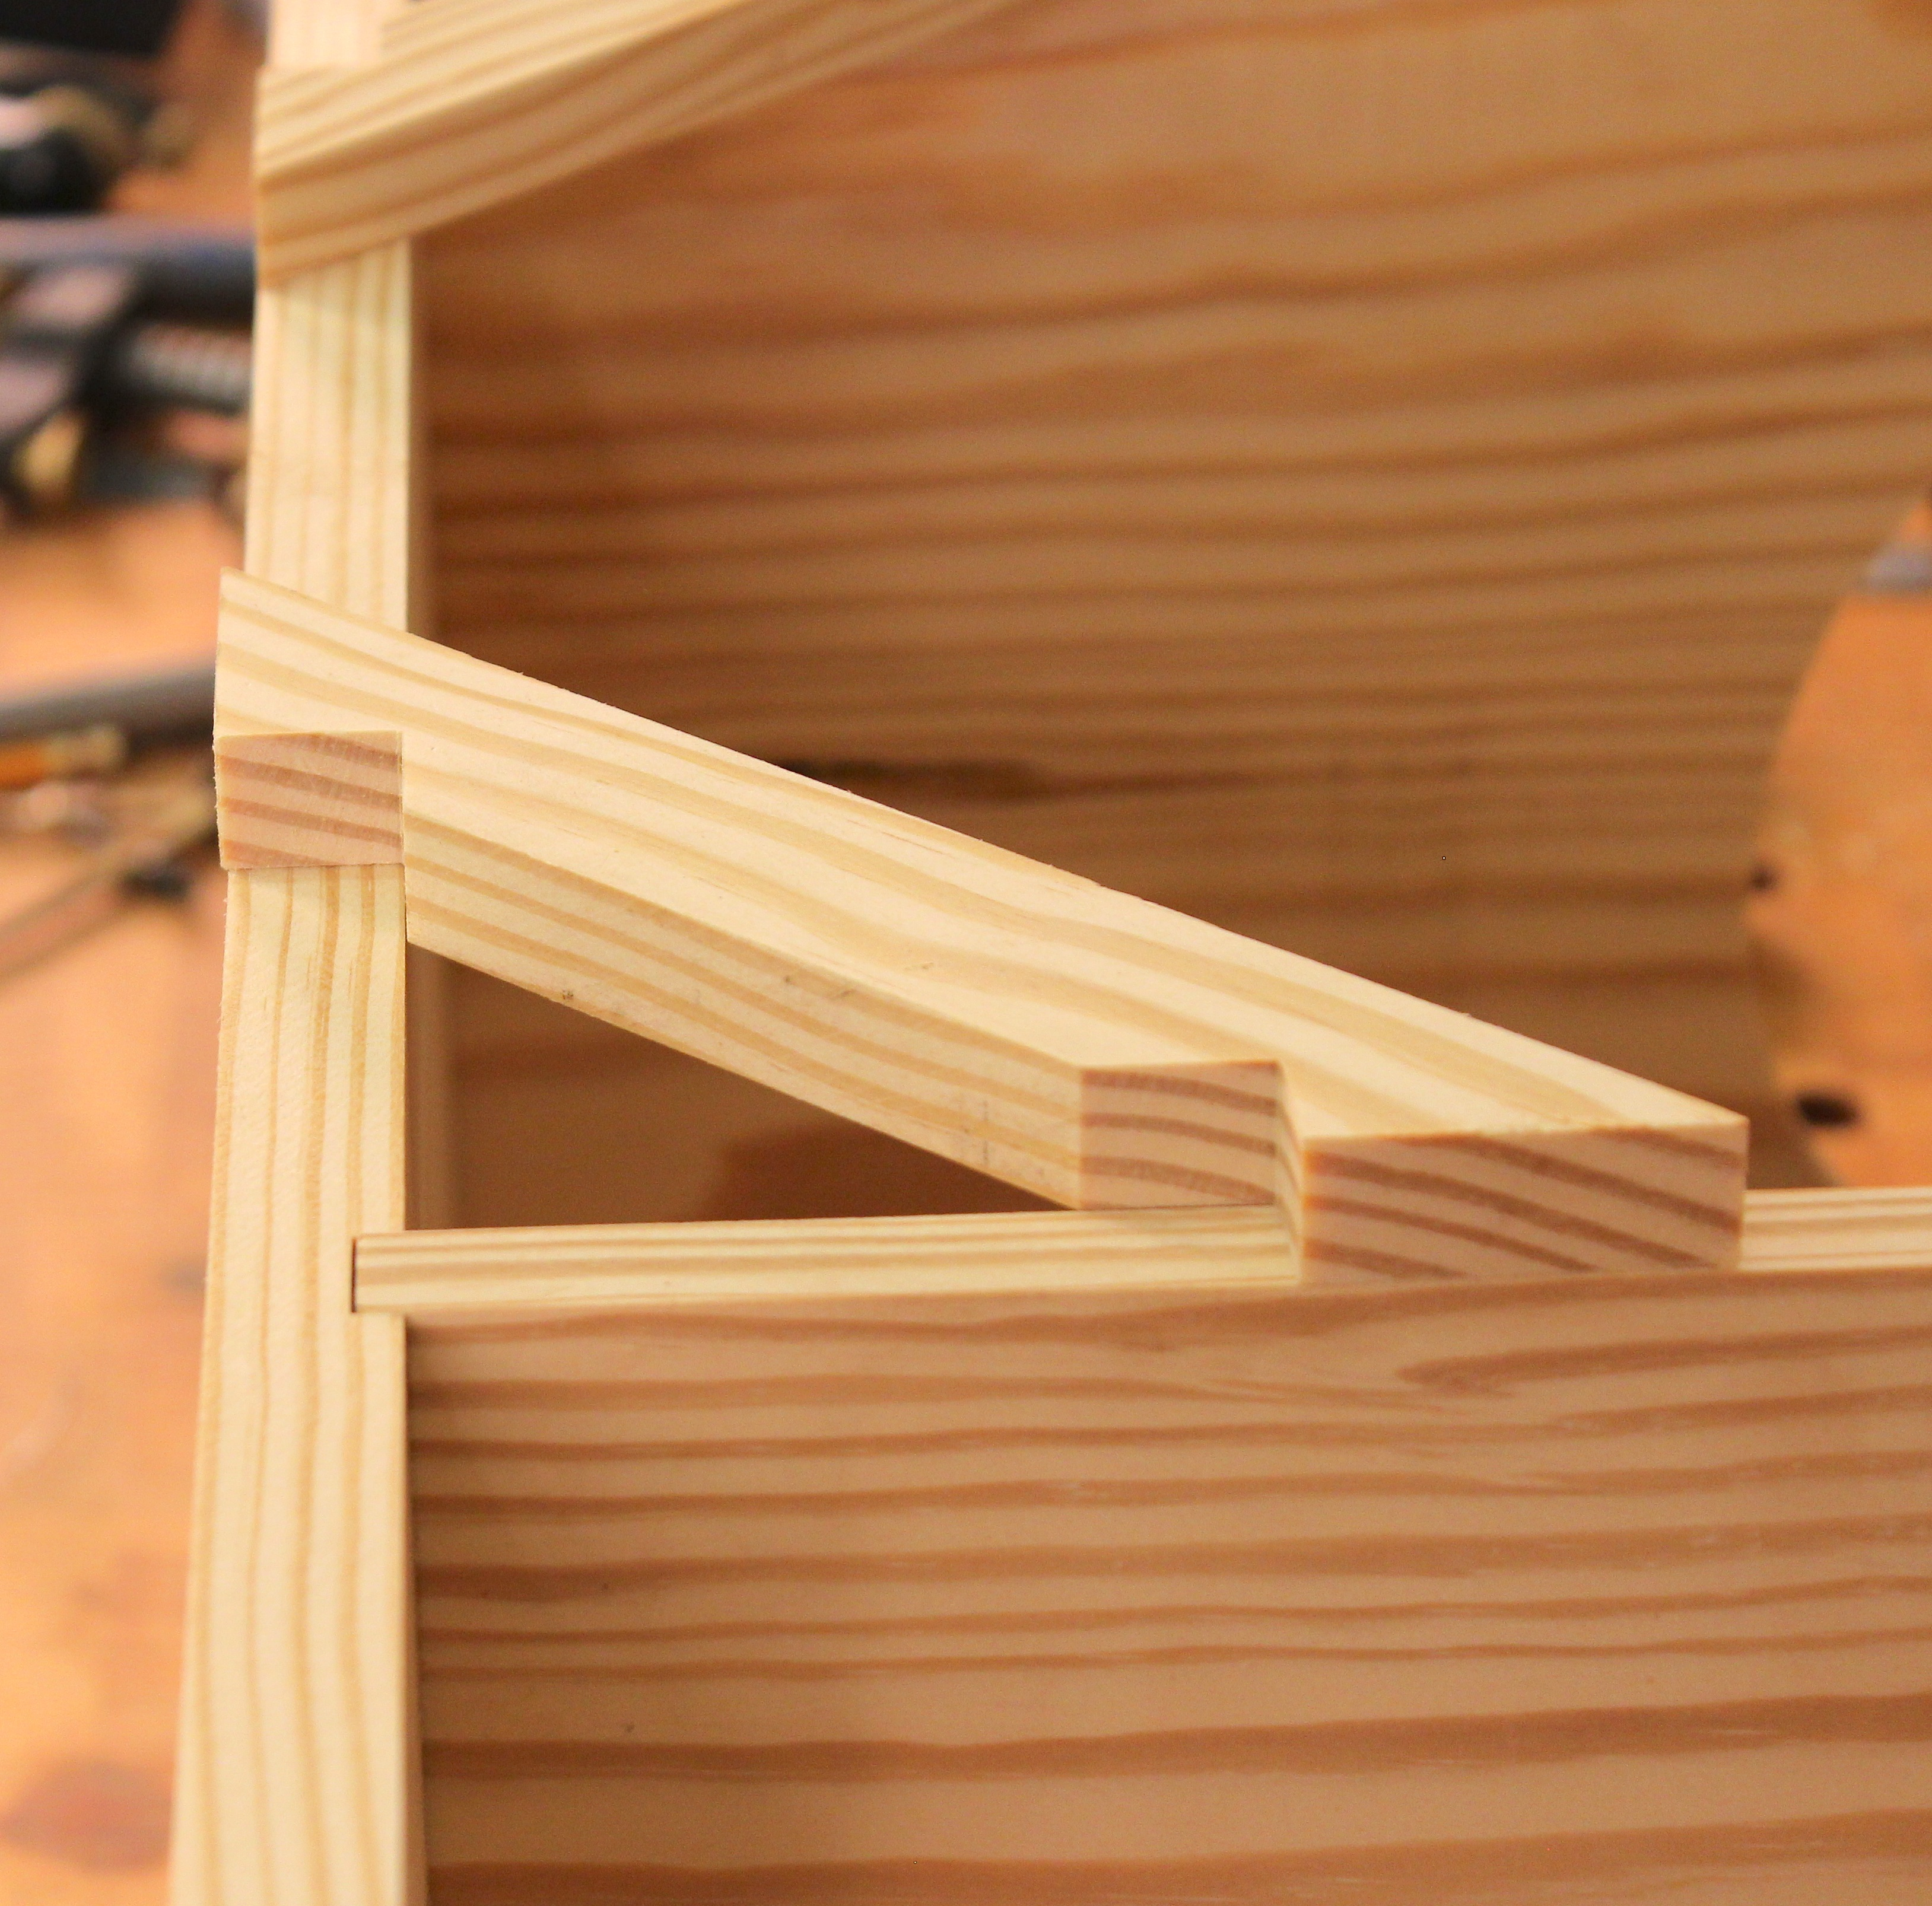 woodworking jigs | Woodworker's Edge